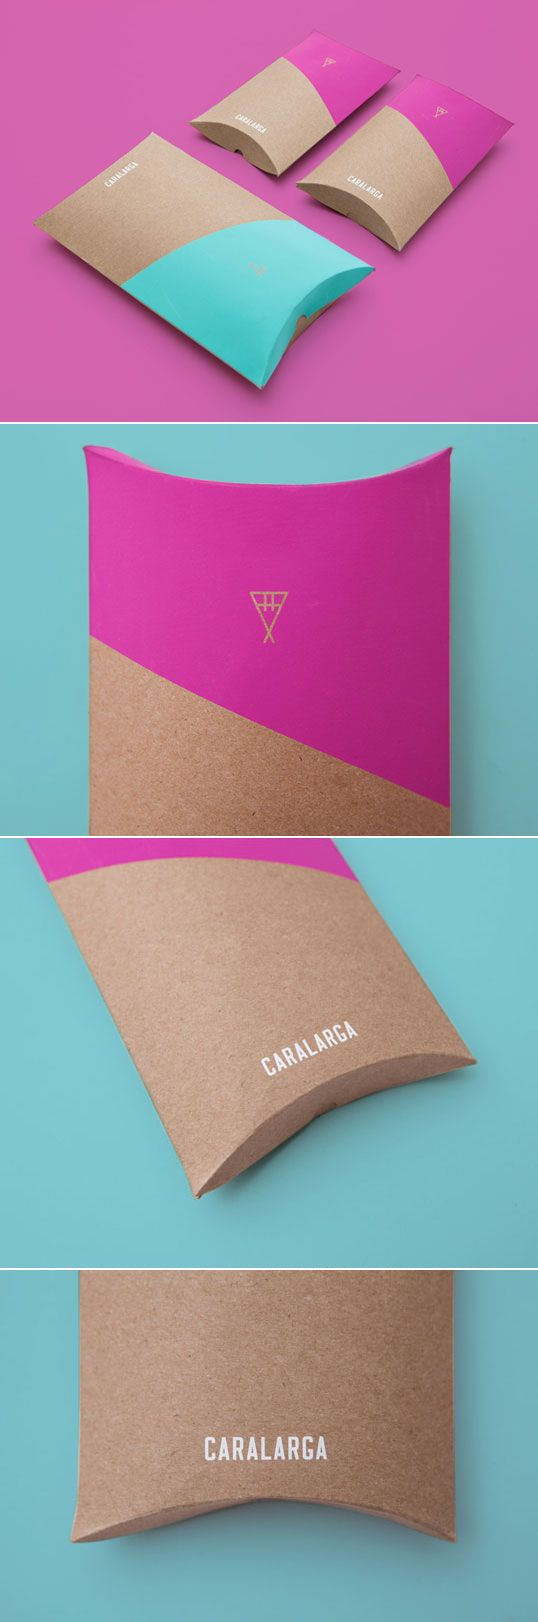 Lovely Package - Caralarga